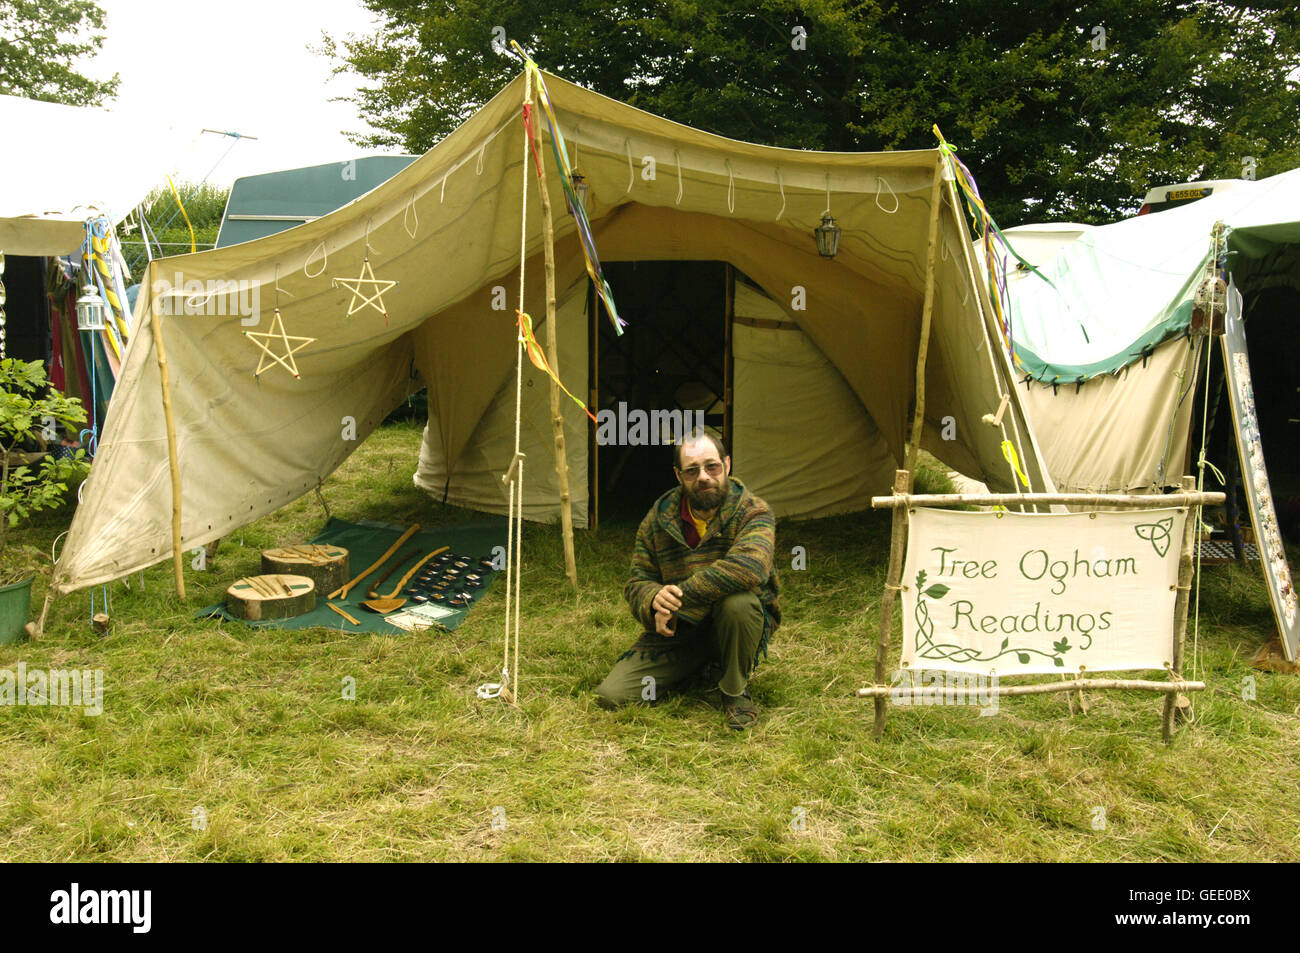 An Environmentally conscious, green fingered Ogham reader, Big Green Gathering, UK August 2005 - Stock Image